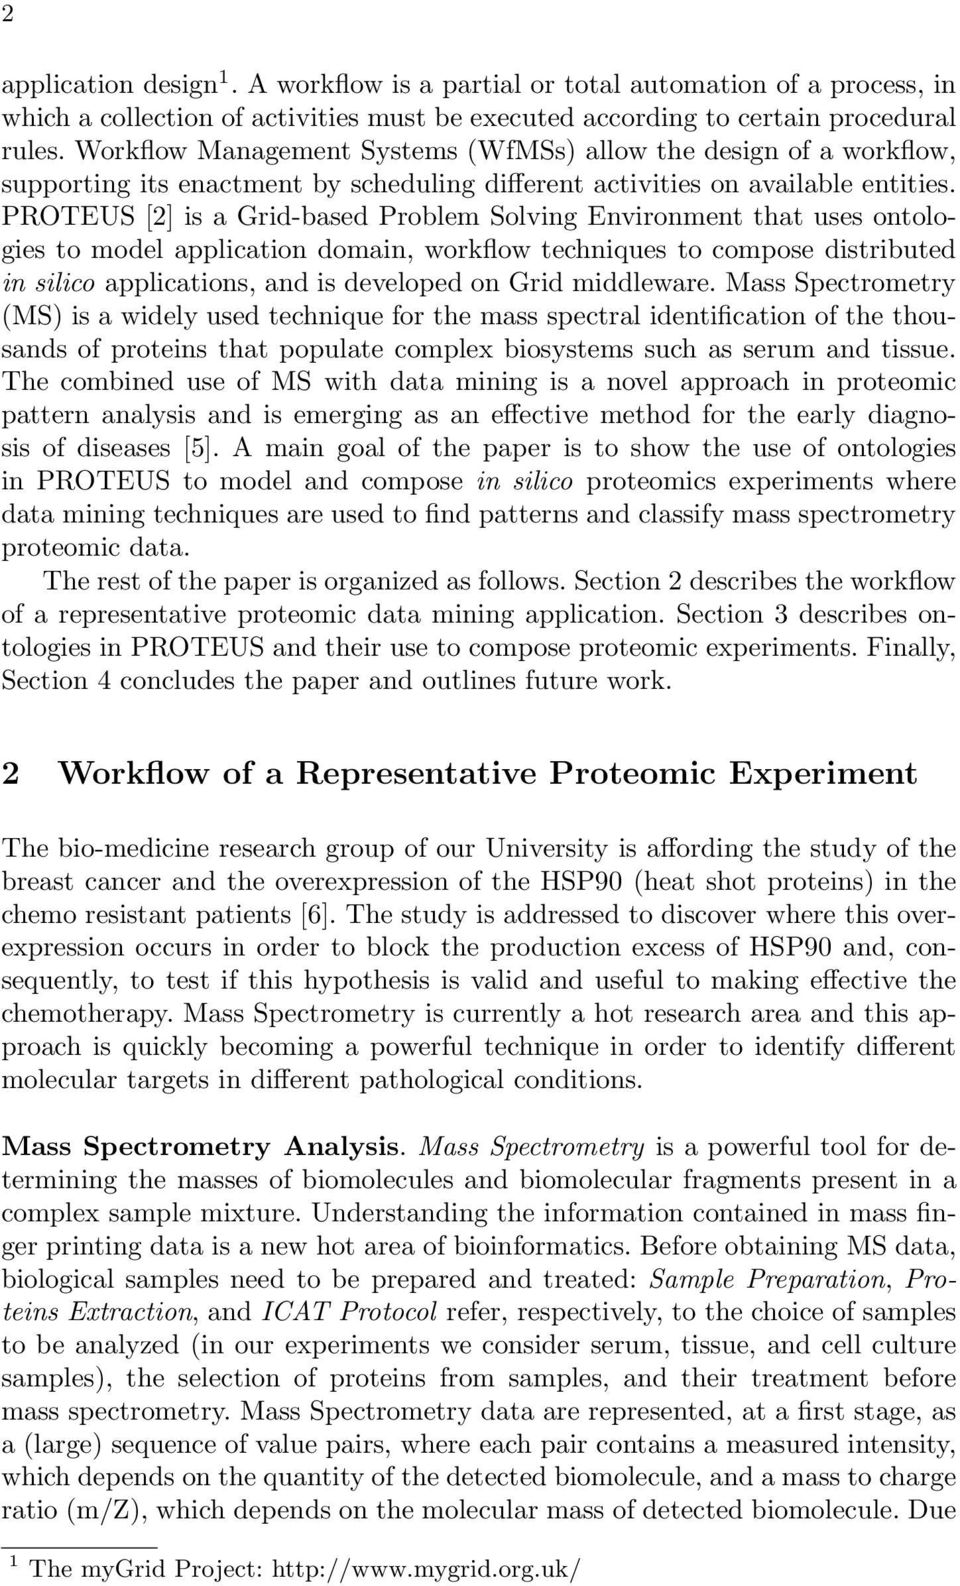 PROTEUS [2] is a Grid-based Problem Solving Environment that uses ontologies to model application domain, workflow techniques to compose distributed in silico applications, and is developed on Grid